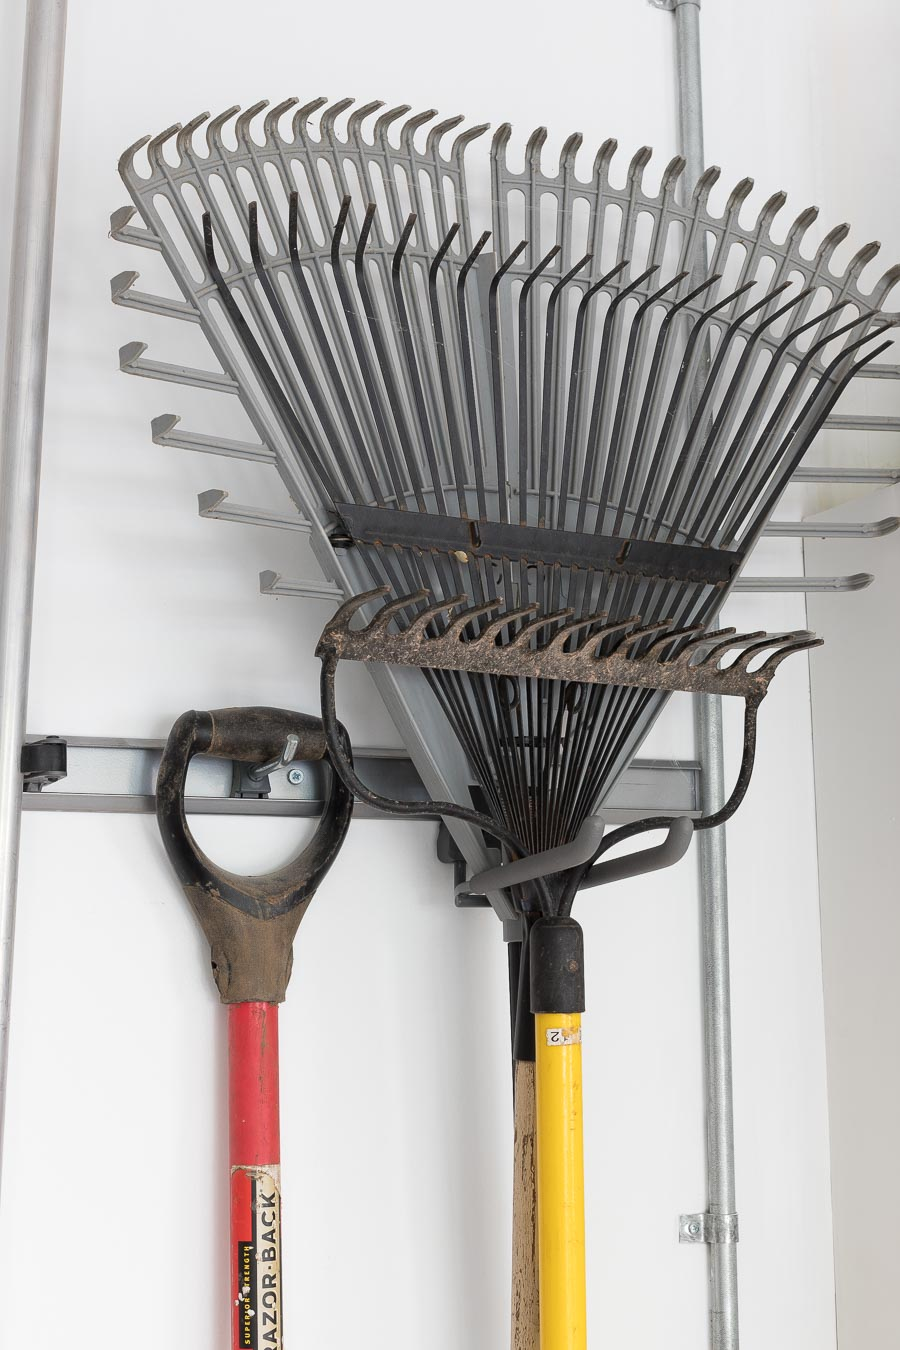 Elfa hooks for hanging long handled tools in the garage - love this organization system!